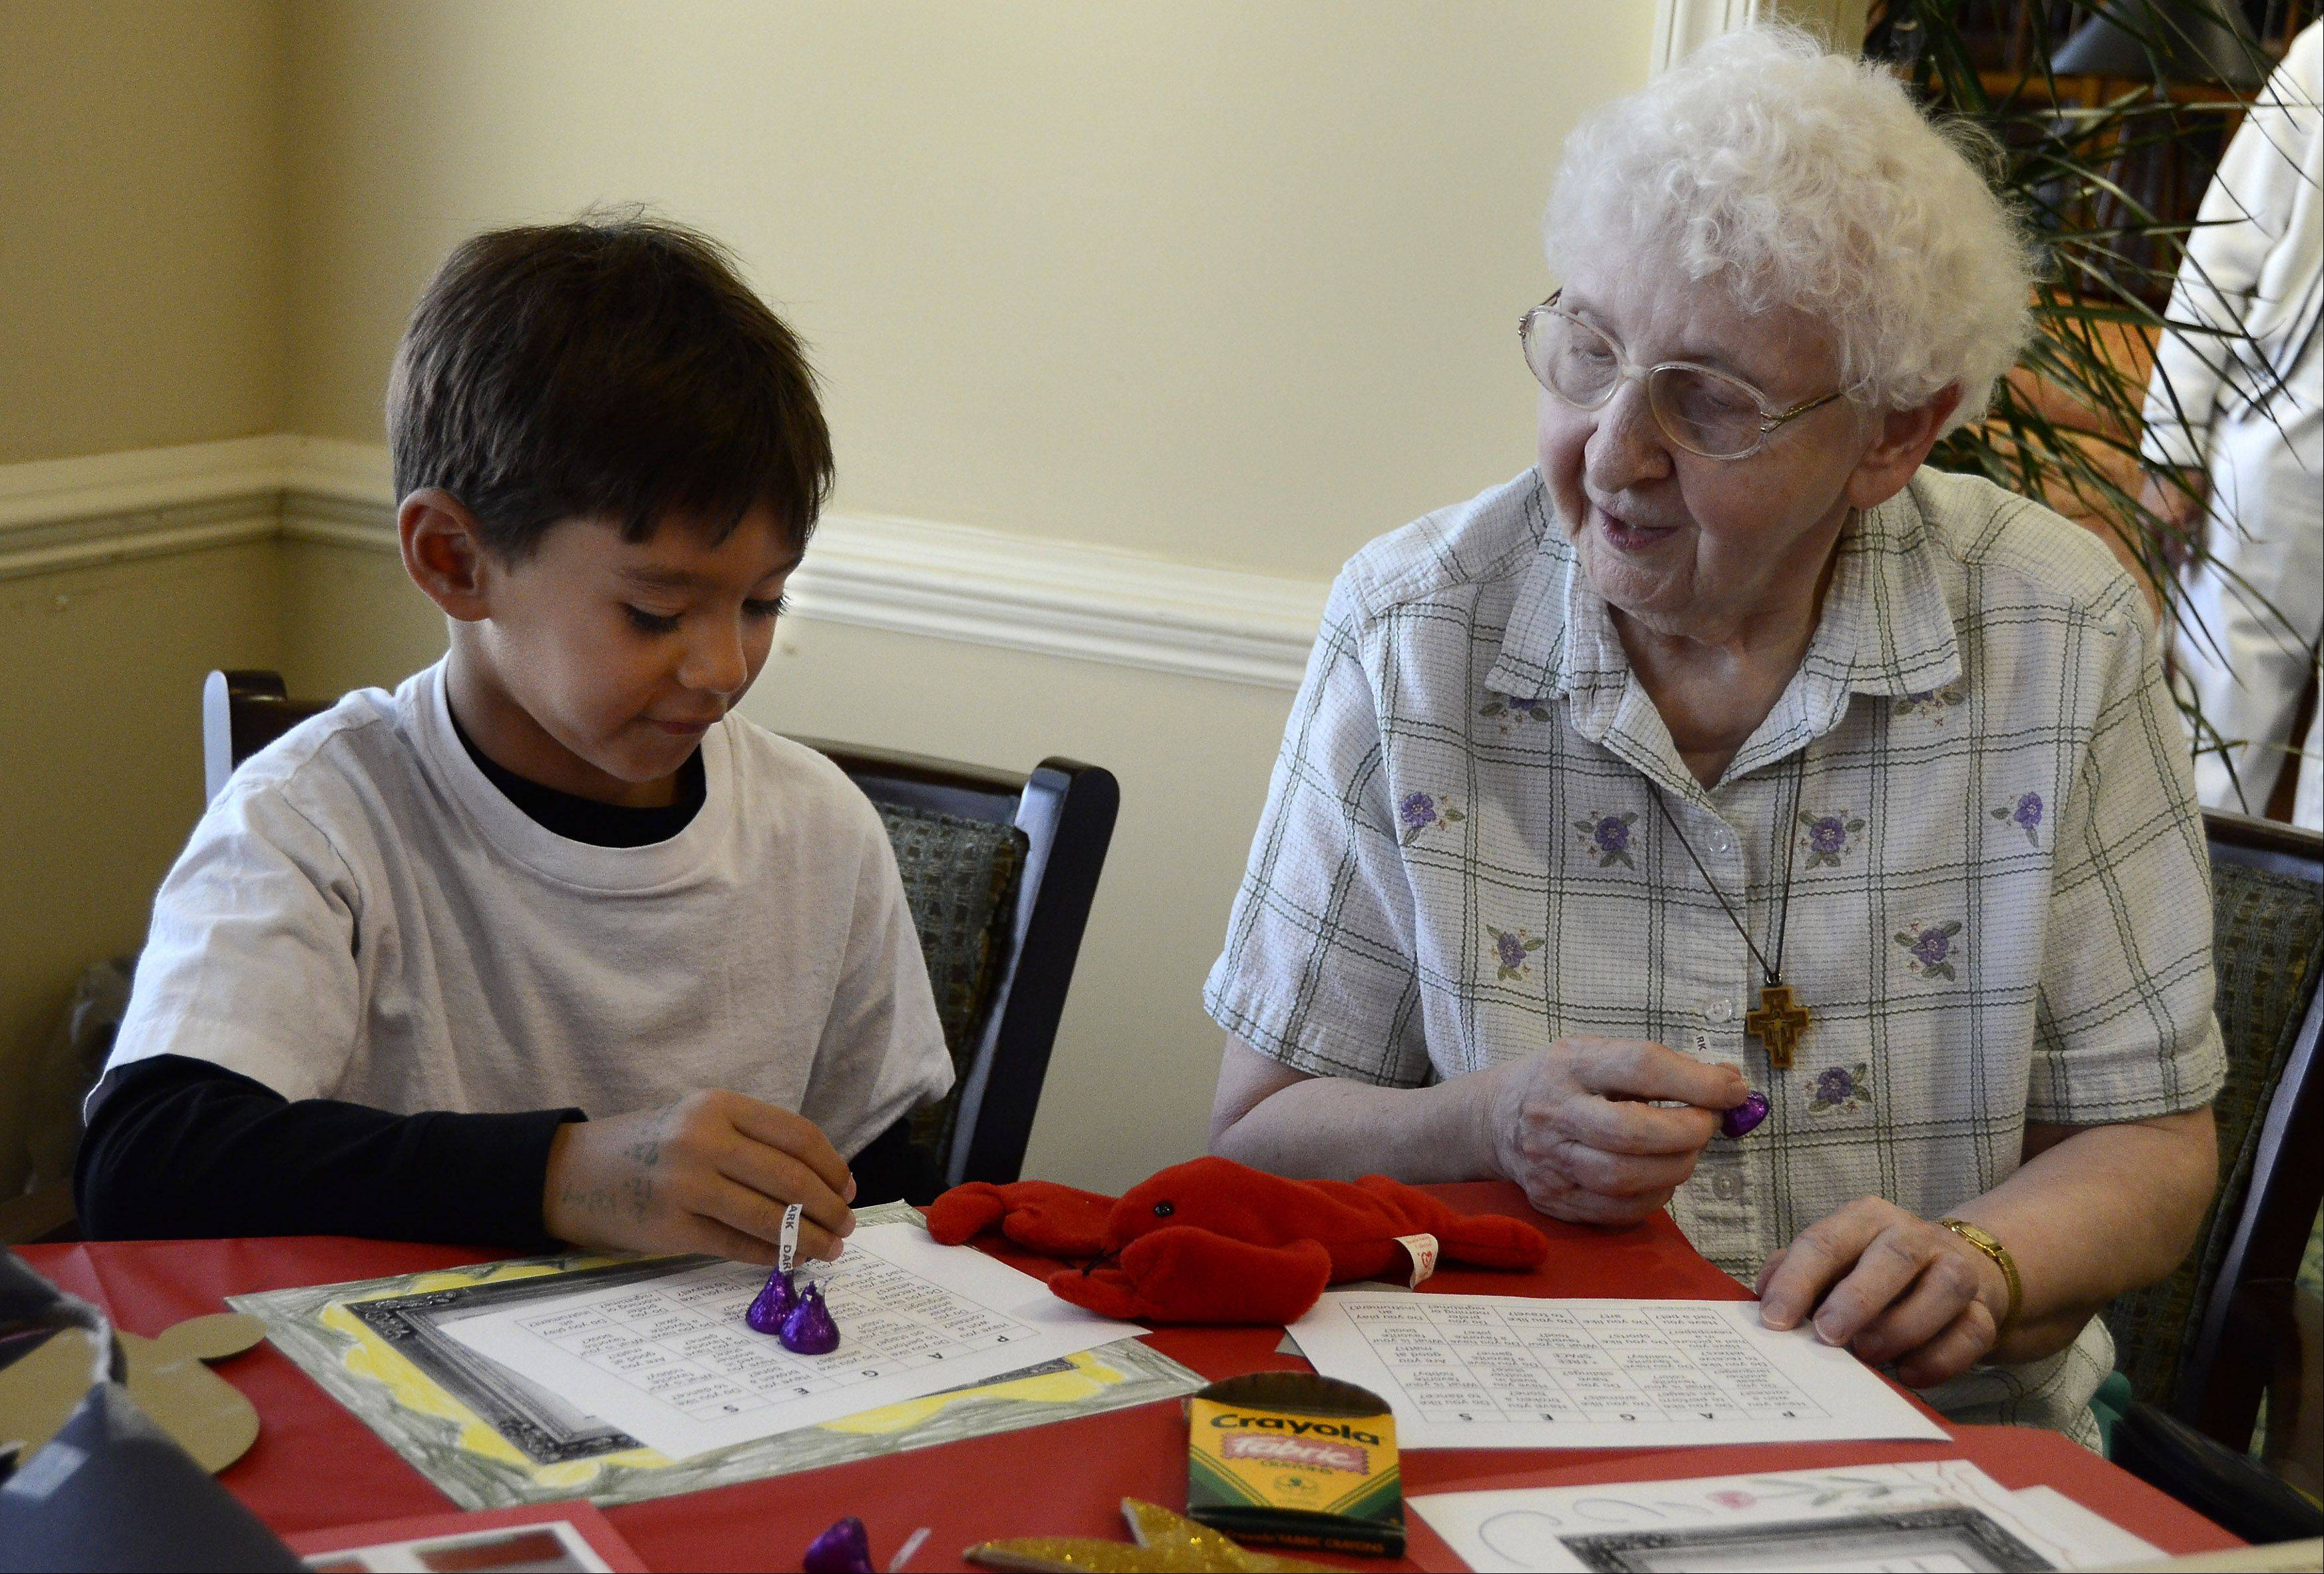 Lucas Conwell, 7, and Sister Barbara Koza play Bingo together at the Clare Oaks Retirement Community. They met through Pages Across Ages, an intergenerational reading and writing exchange through the Bartlett Public Library.